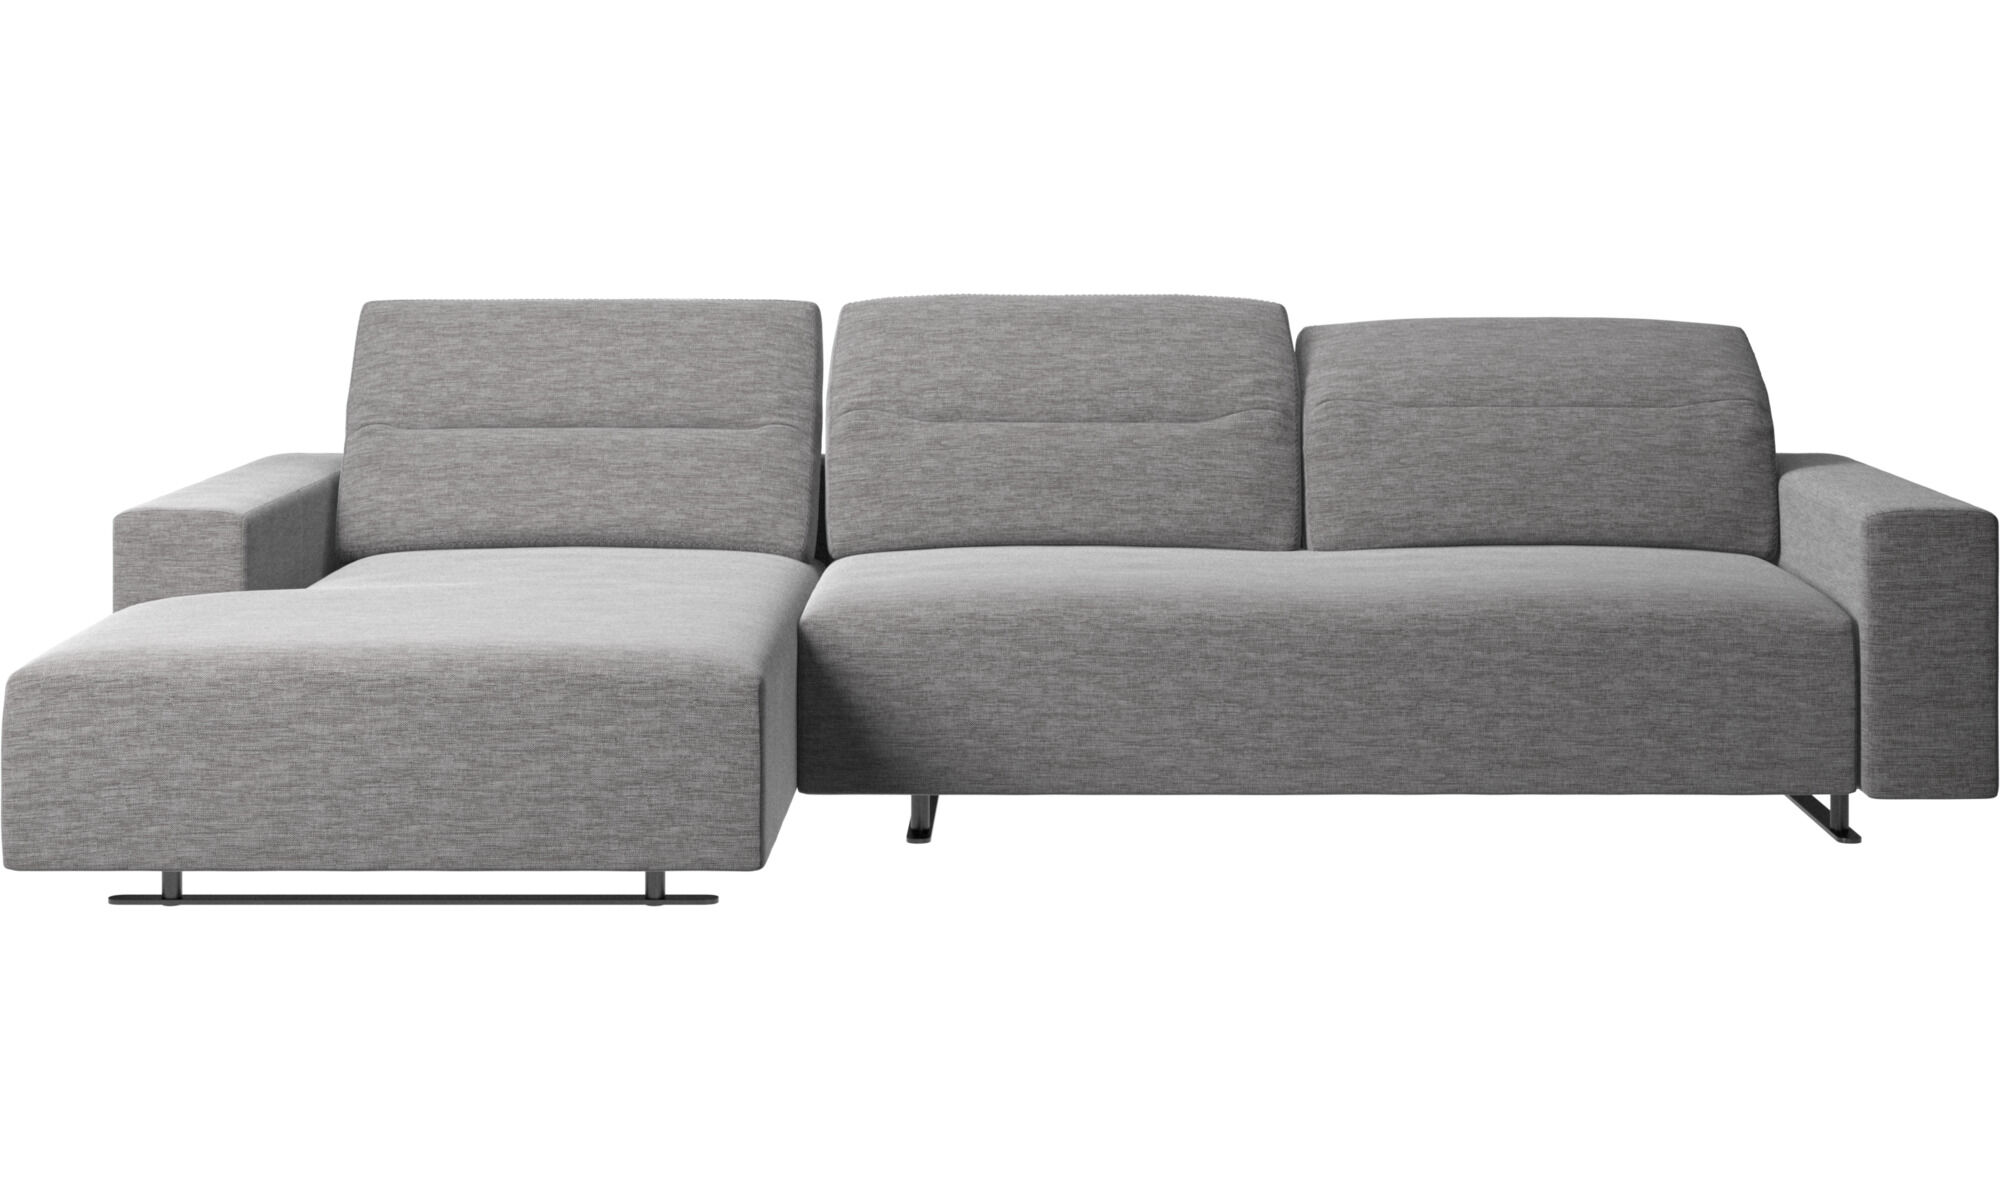 Chaise Lounge Sofas   Hampton Sofa With Adjustable Back And Resting Unit  Left Side, Storage